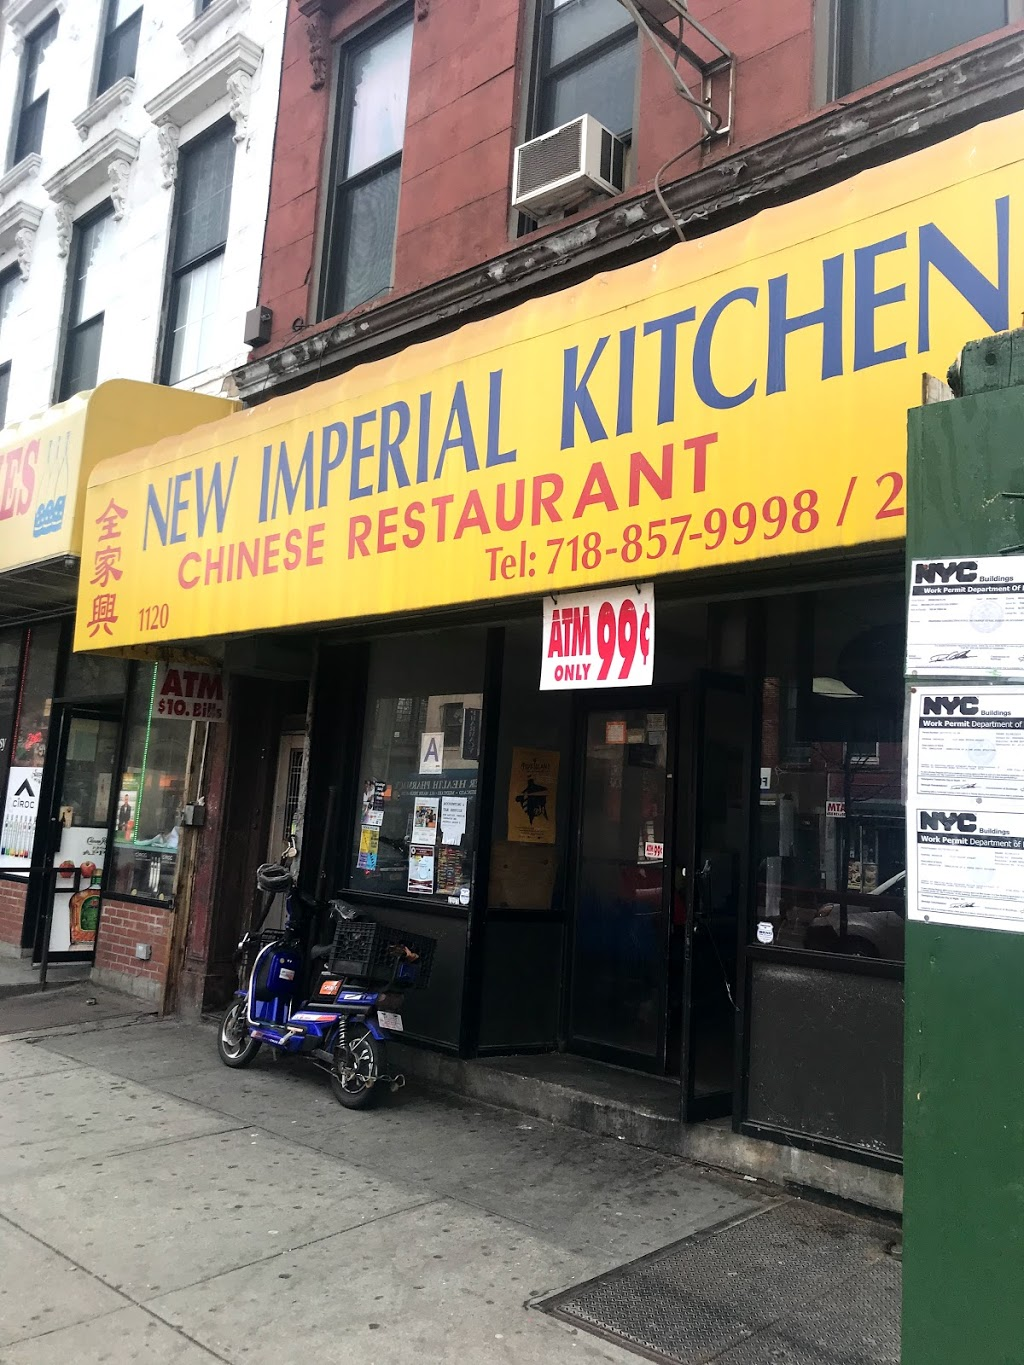 Imperial Chinese Food Kitchen | meal delivery | 1120 Fulton St, Brooklyn, NY 11238, USA | 7188579998 OR +1 718-857-9998